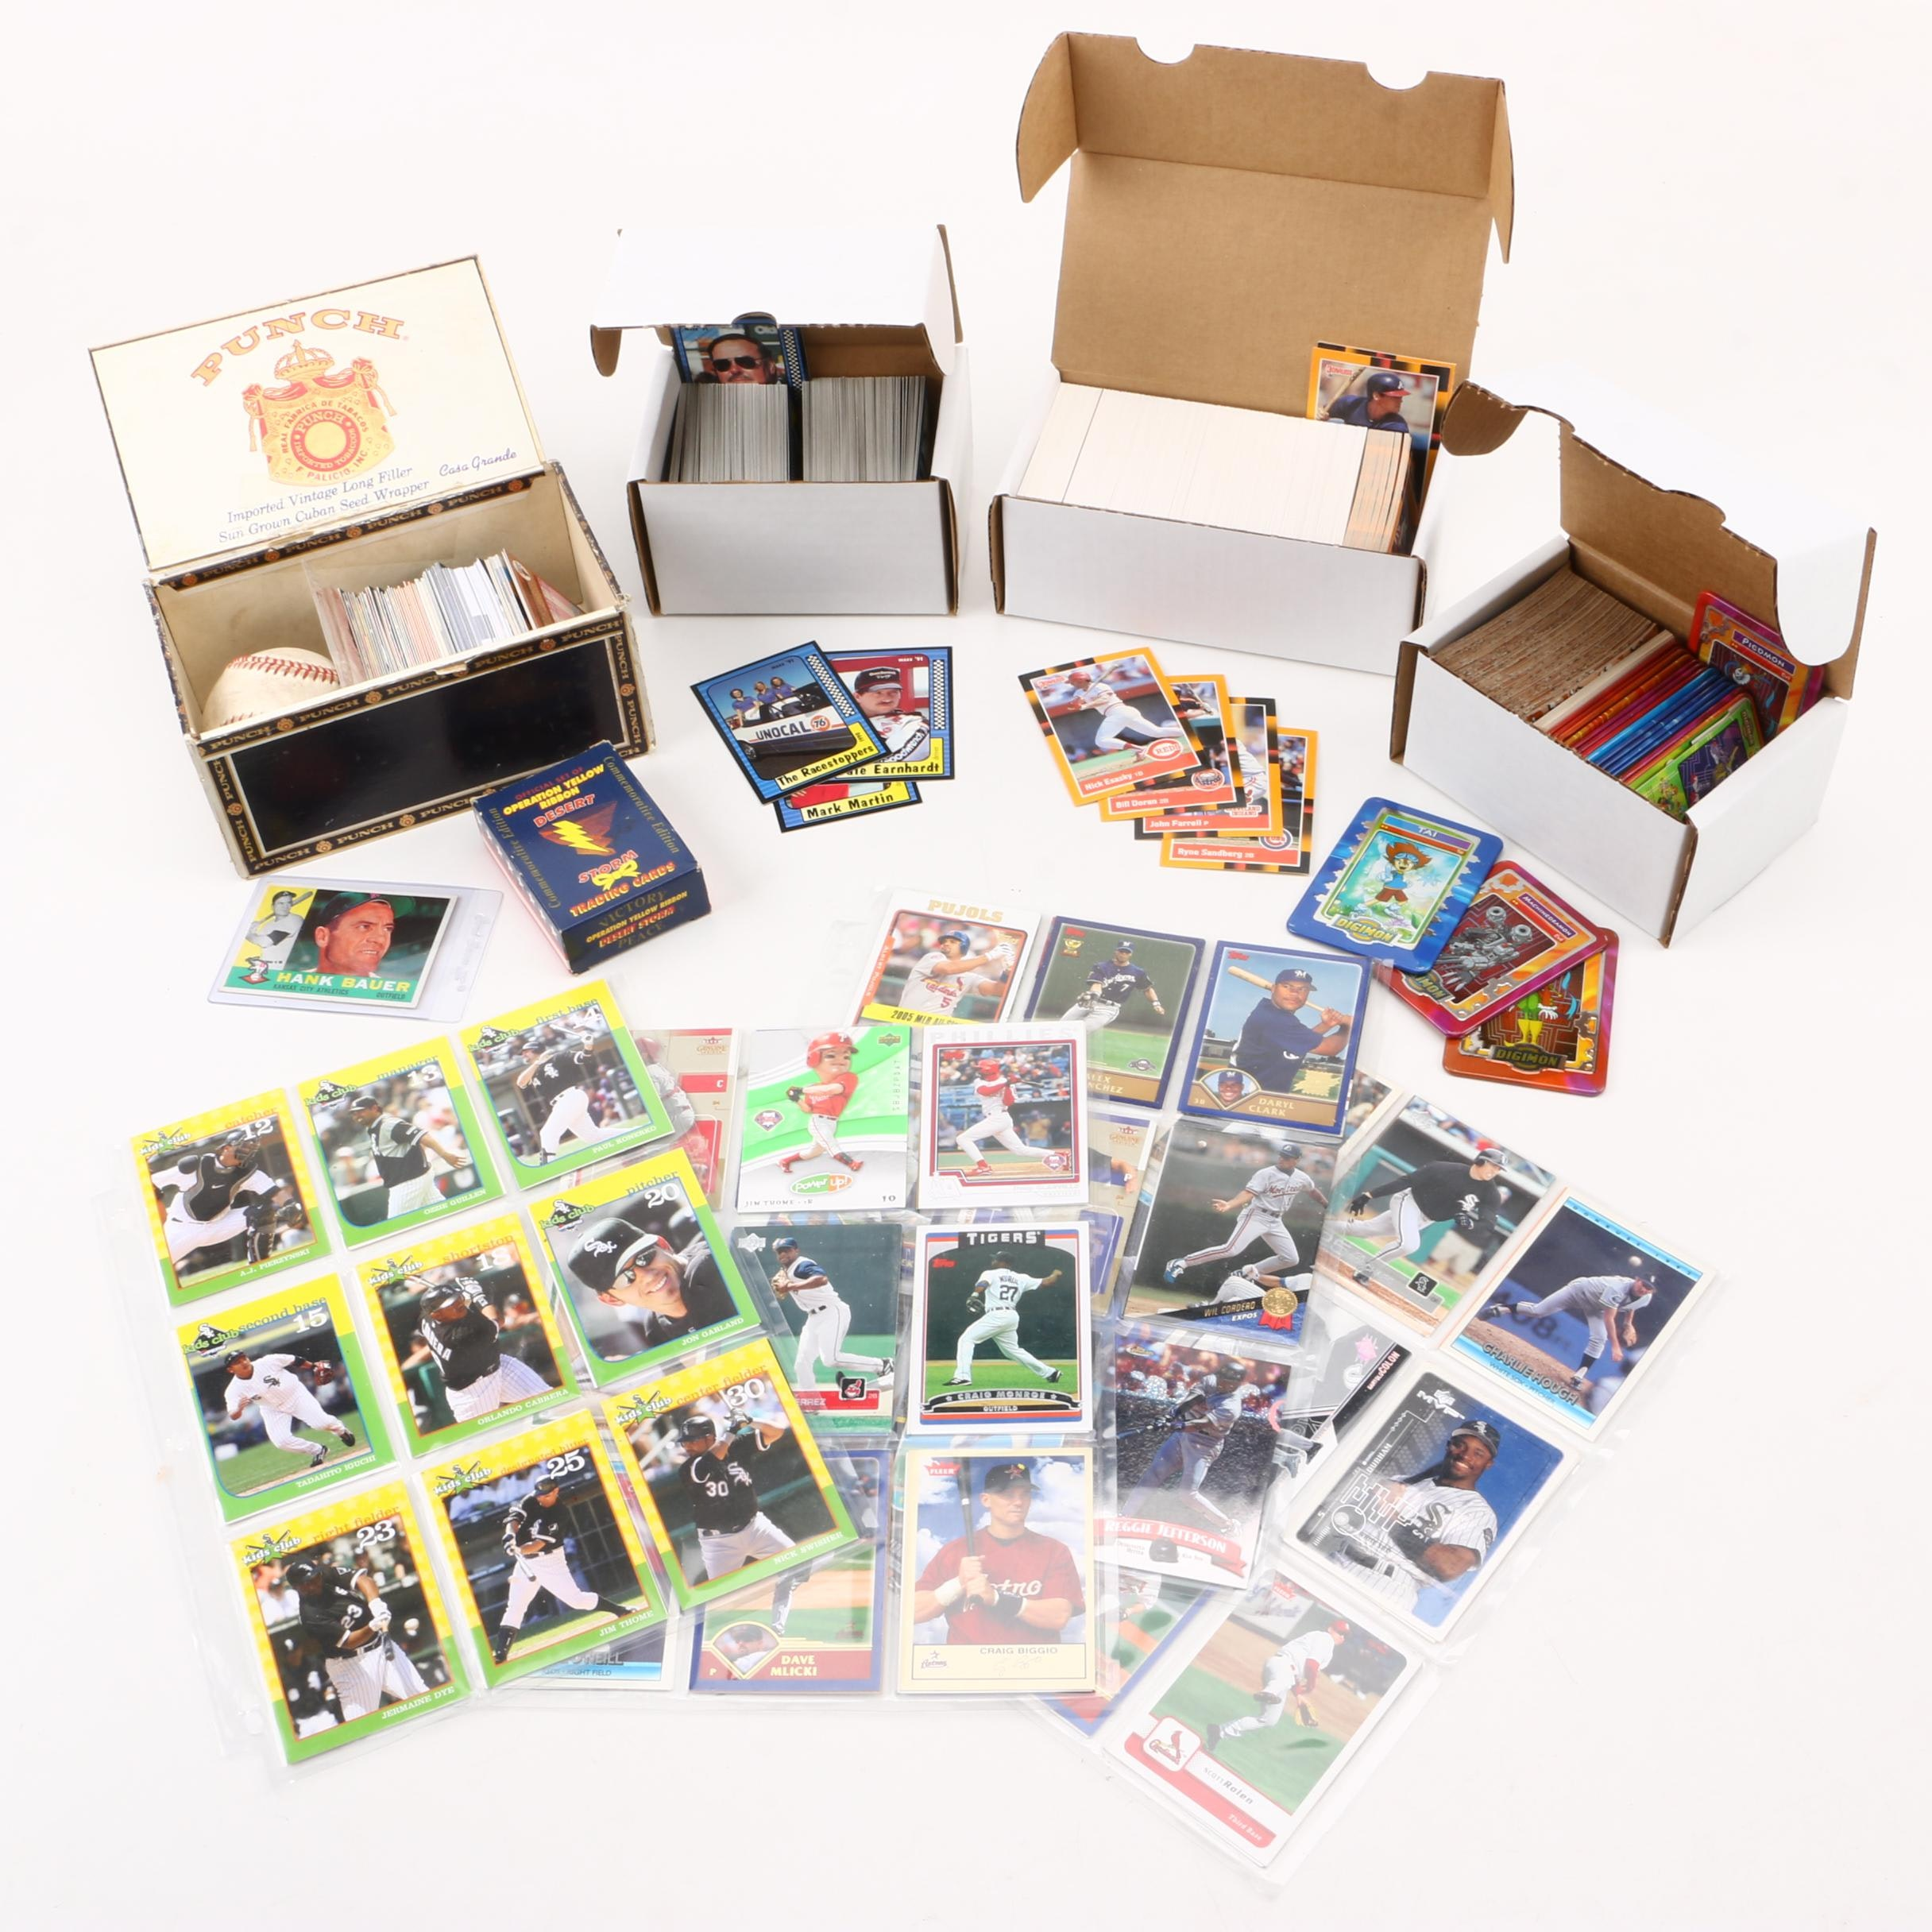 Assorted Trading Cards Including Baseball, NASCAR, and Digimon